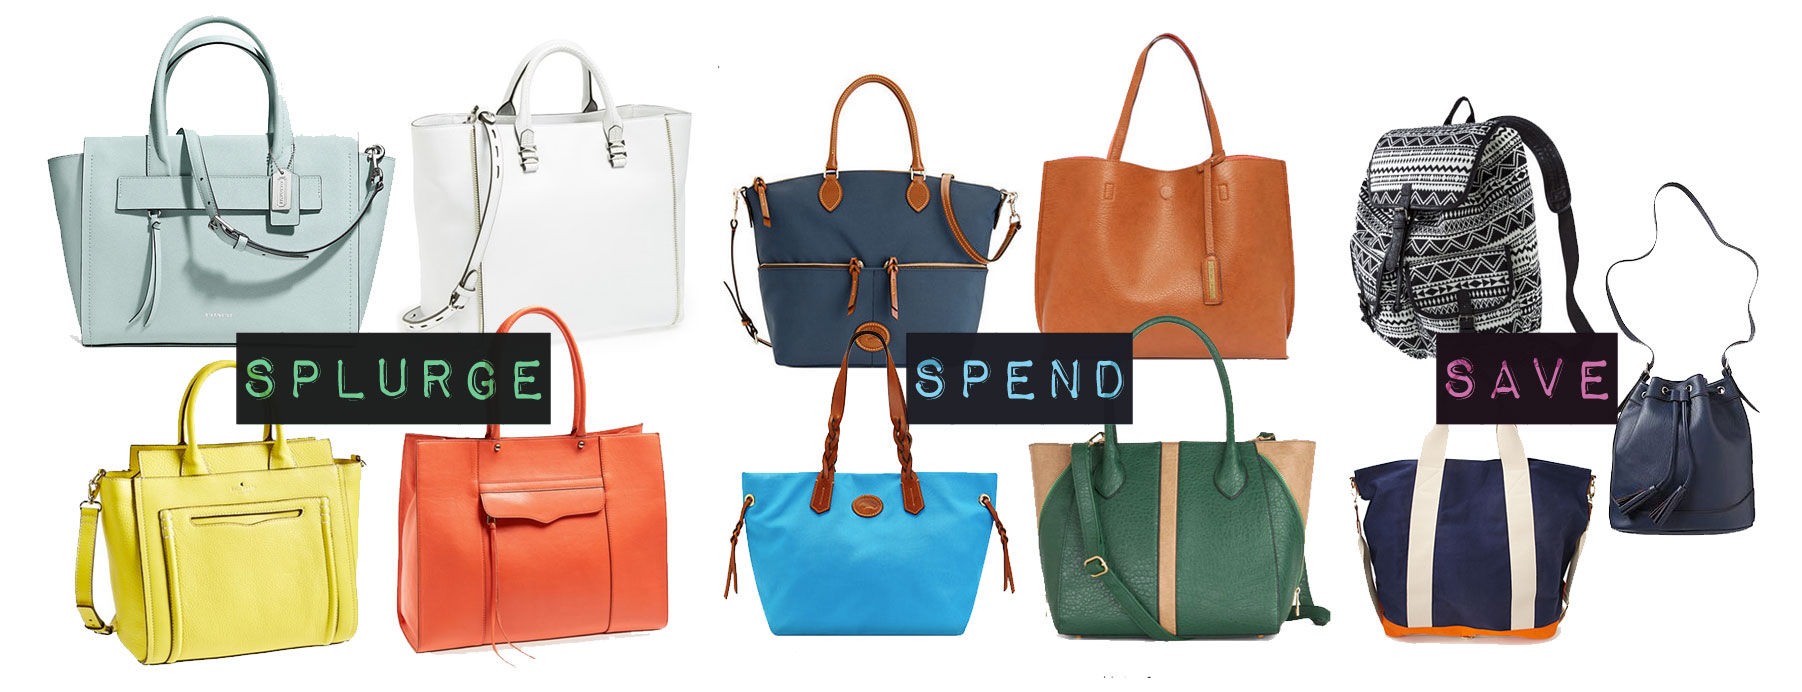 Convertible Tote Bag / Spend, Splurge, Save / hello, rigby!